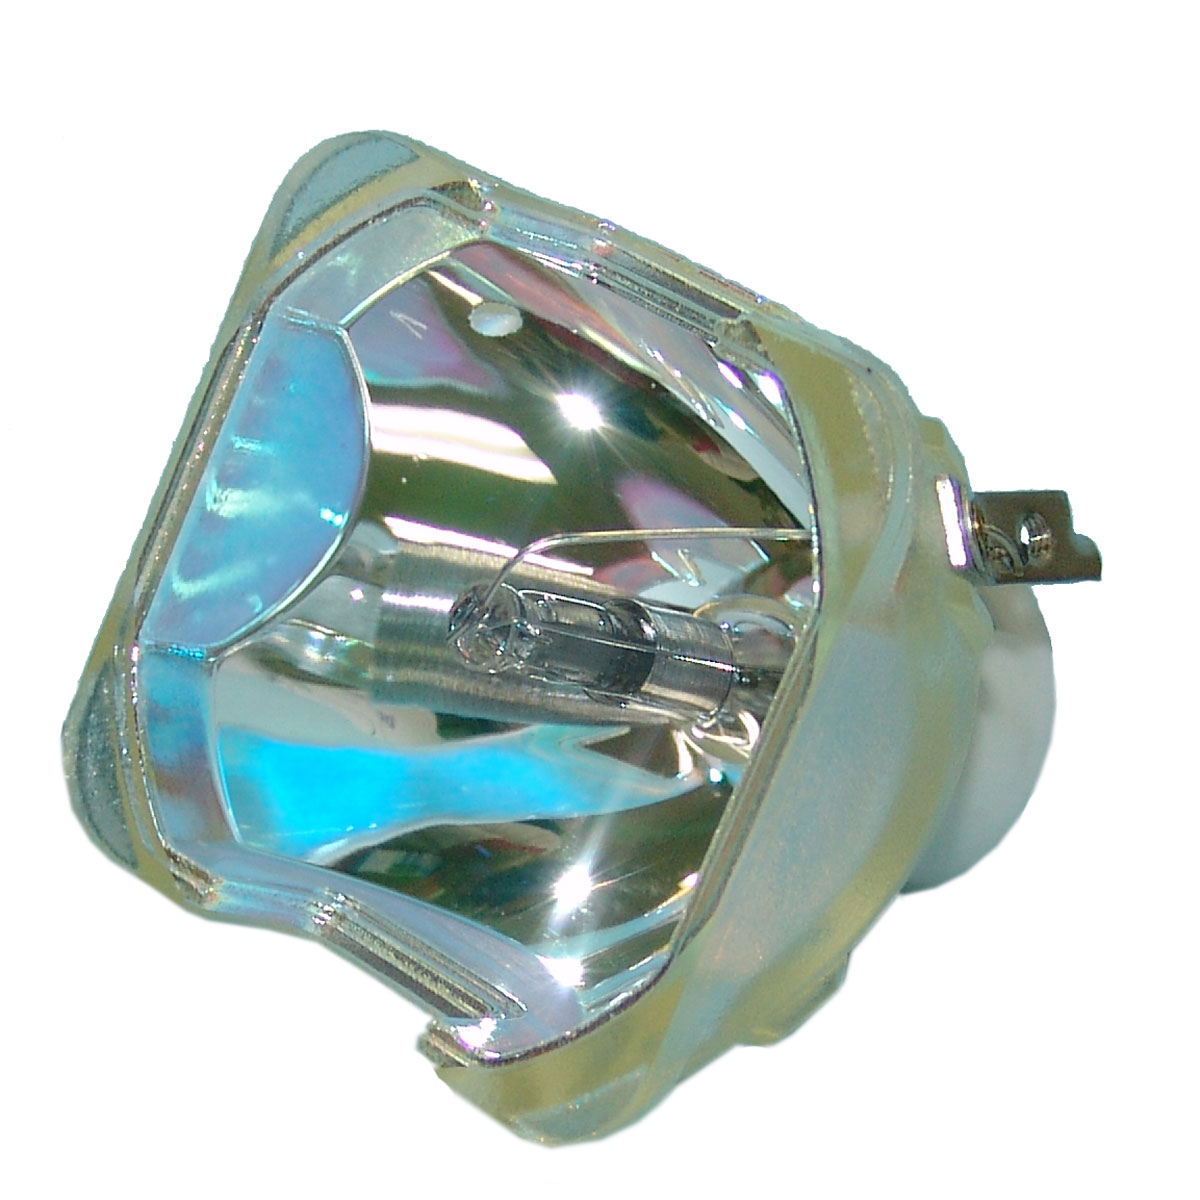 Lutema Economy for NEC LX1300 Projector Lamp (Bulb Only) - image 5 de 5